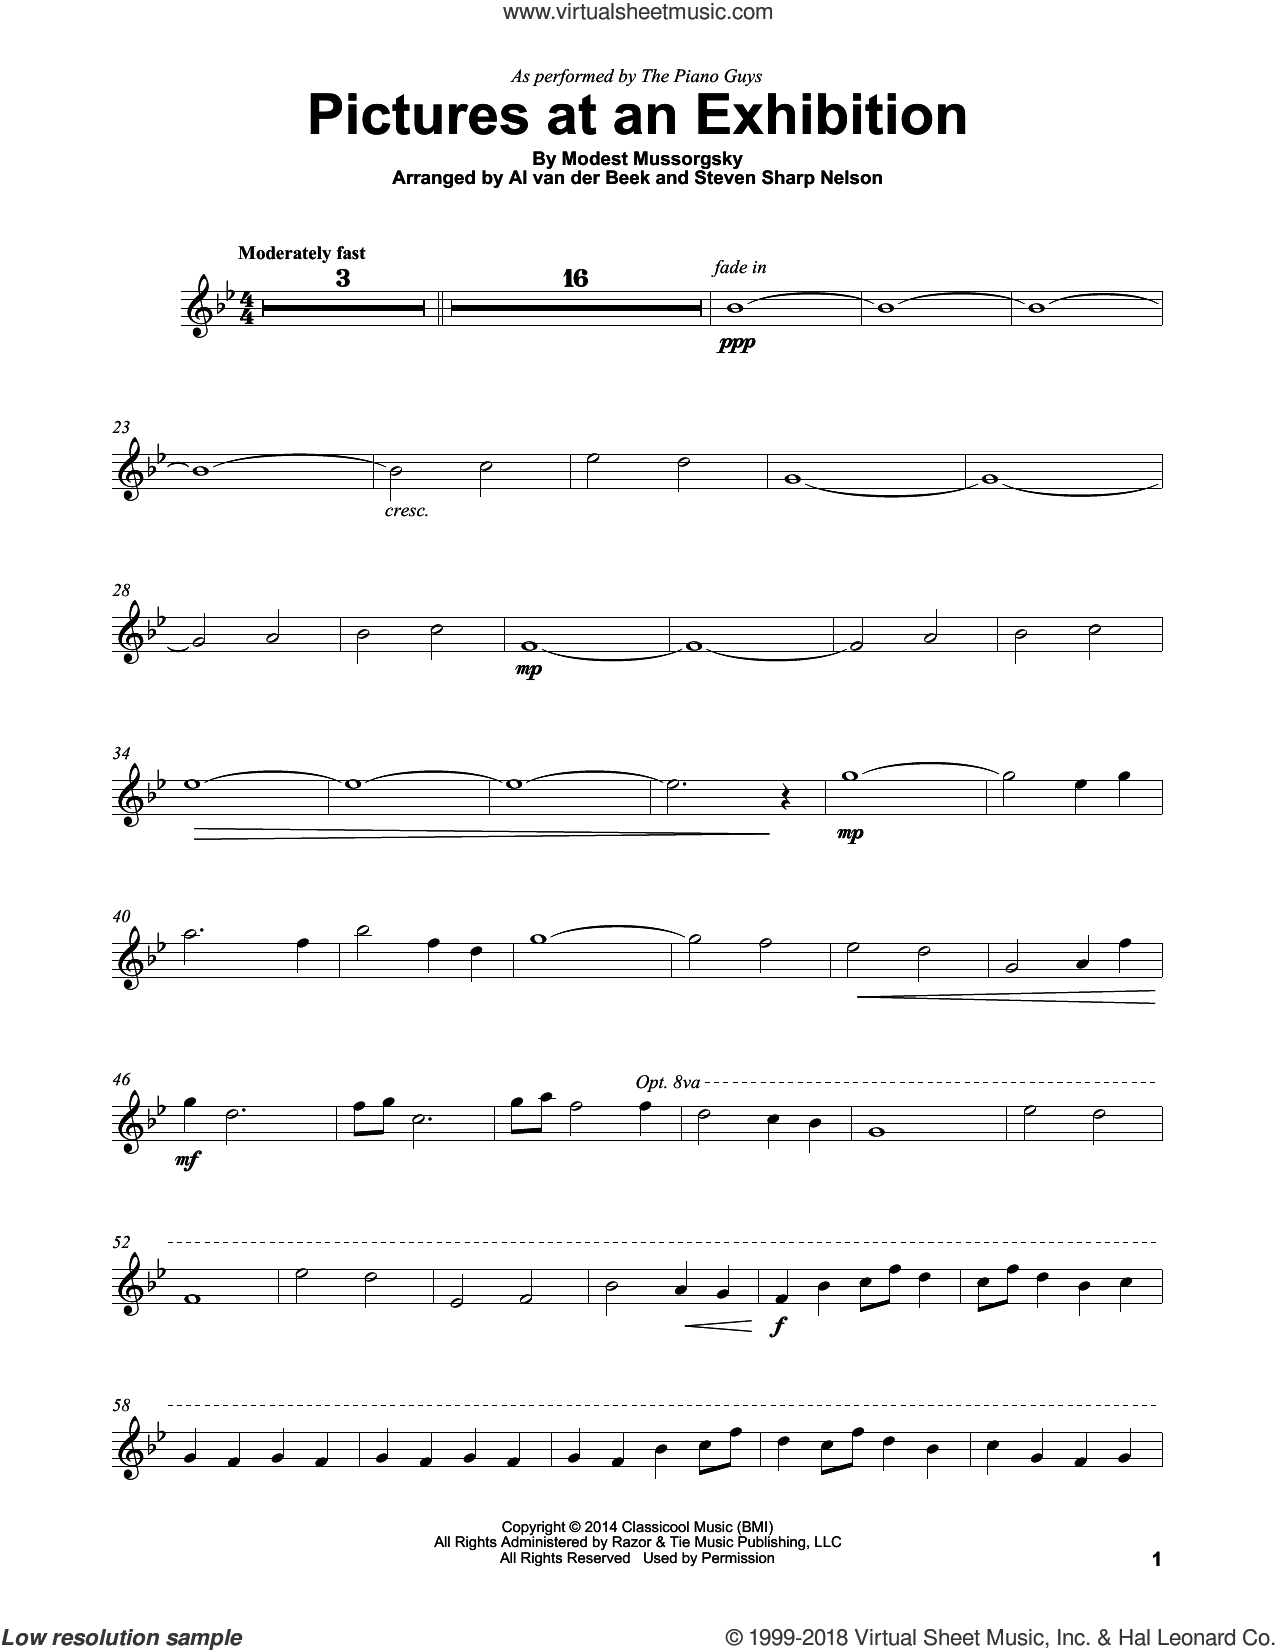 Pictures At An Exhibition sheet music for violin solo by The Piano Guys and Modest Petrovic Mussorgsky, intermediate skill level